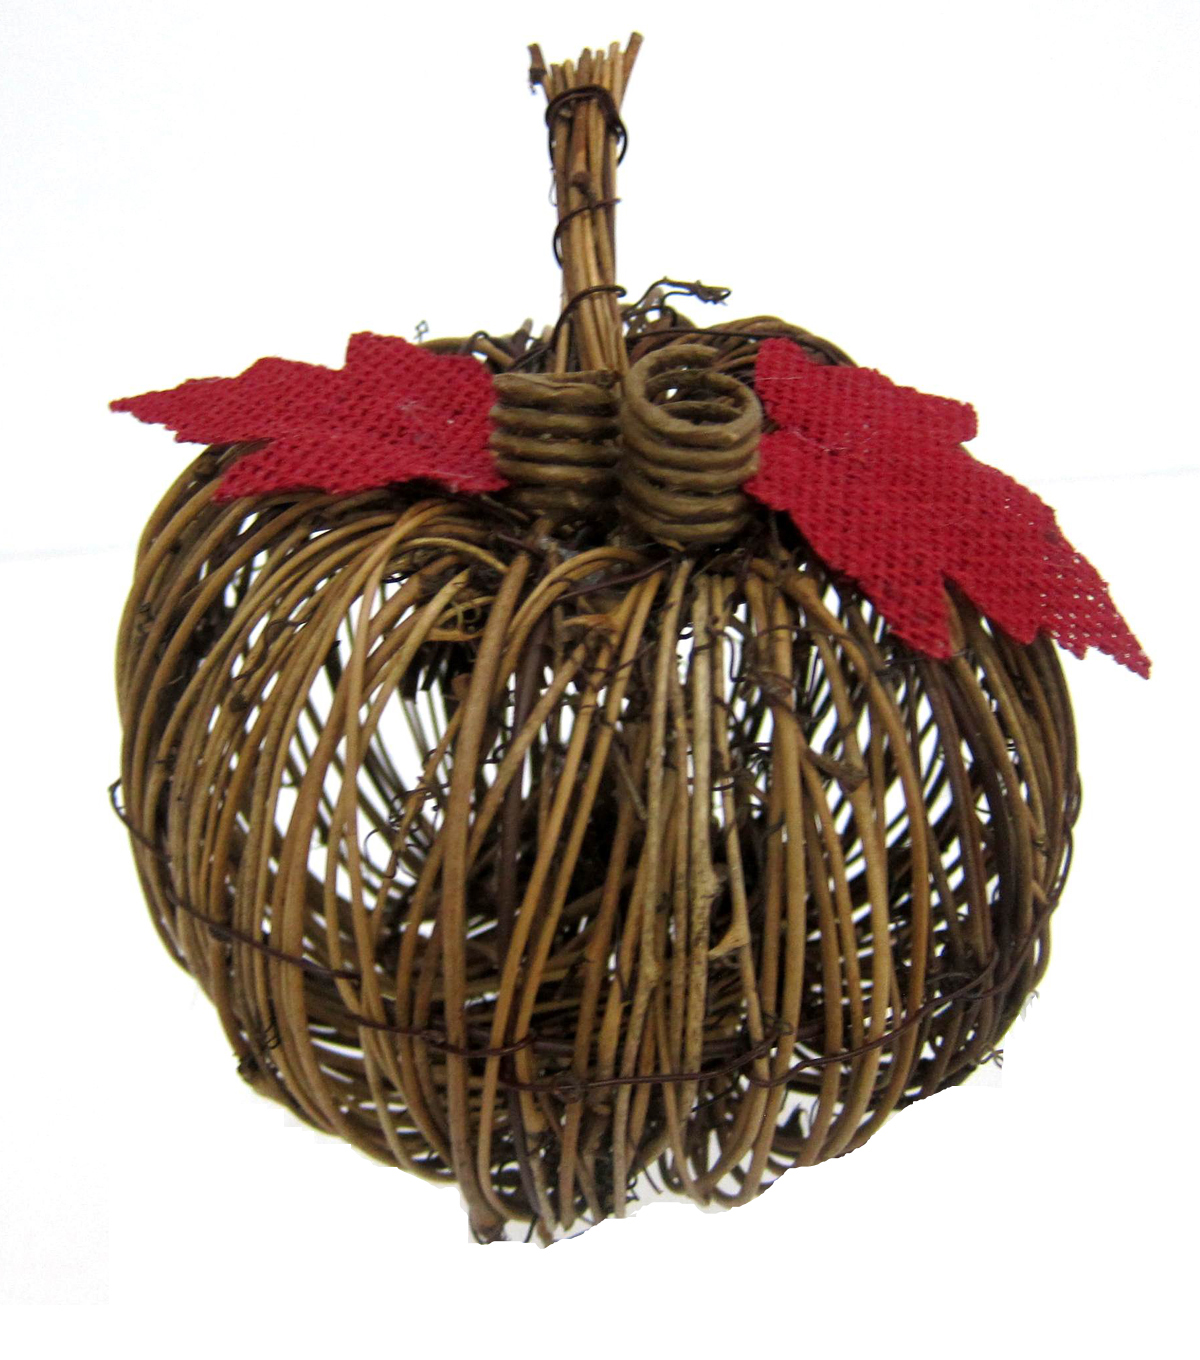 Pumpkin Boutique Small Rattan Pumpkin with Red Leaves